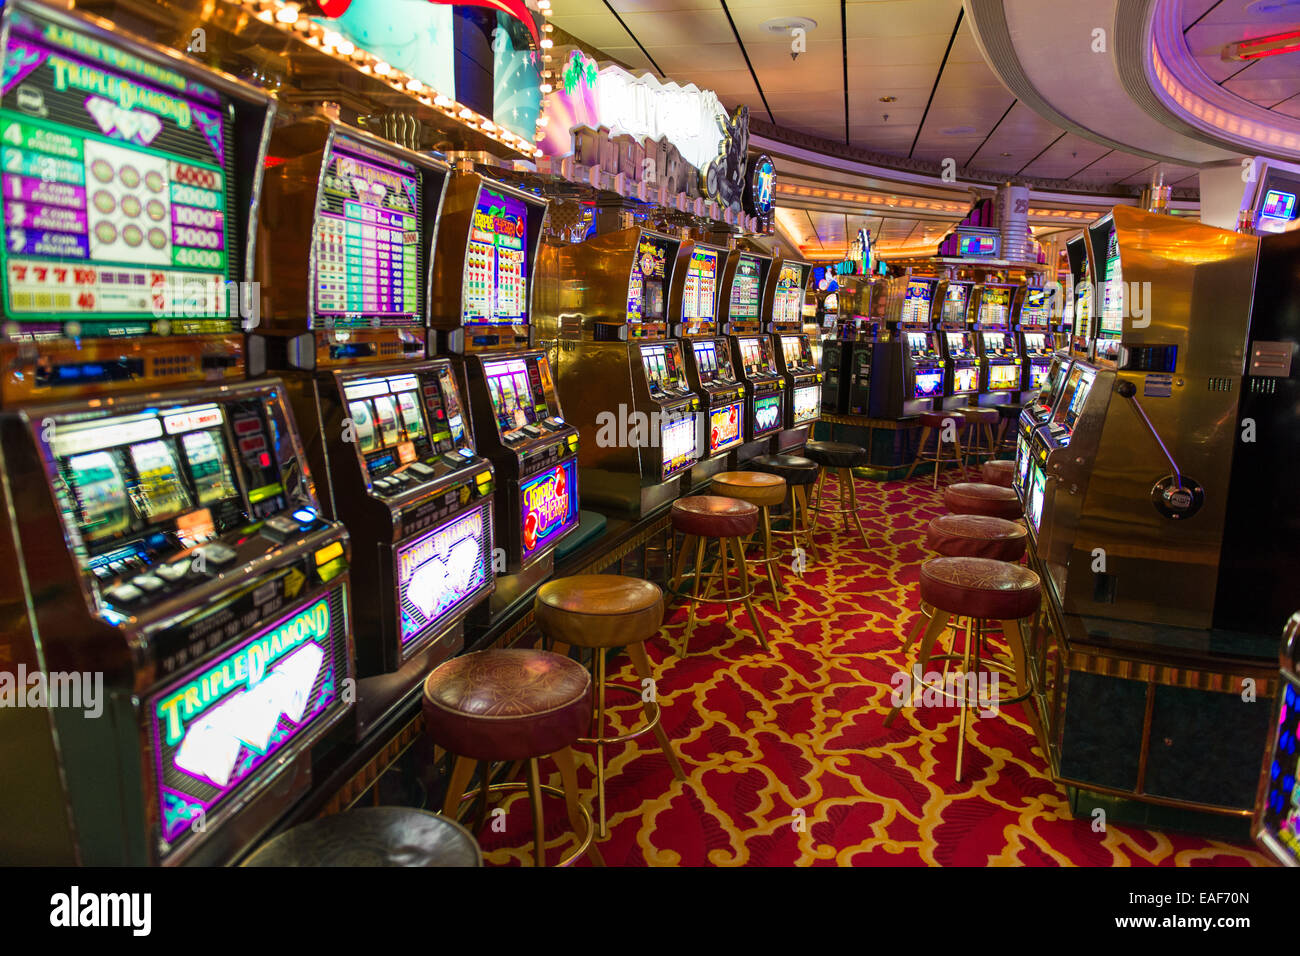 Slot Machines In A Casino On A Cruise Ship Adventure Of The Seas - Cruise ship casino